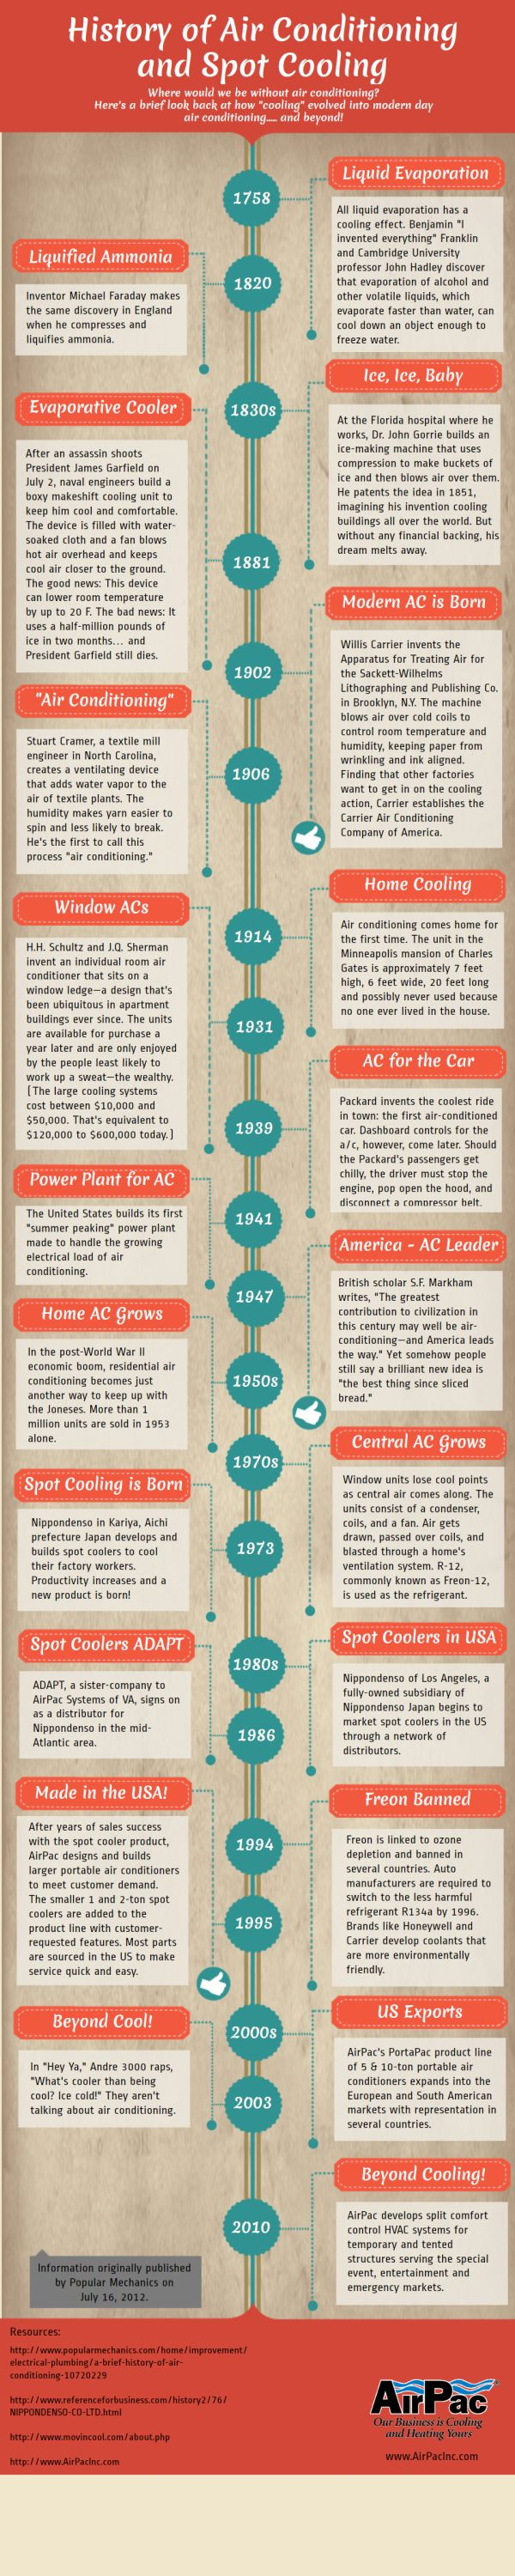 Cool! History of air conditioning & spot cooling from @AirPac Portable Air Conditioners & Heaters. #manufacturingiscool #truckpuns